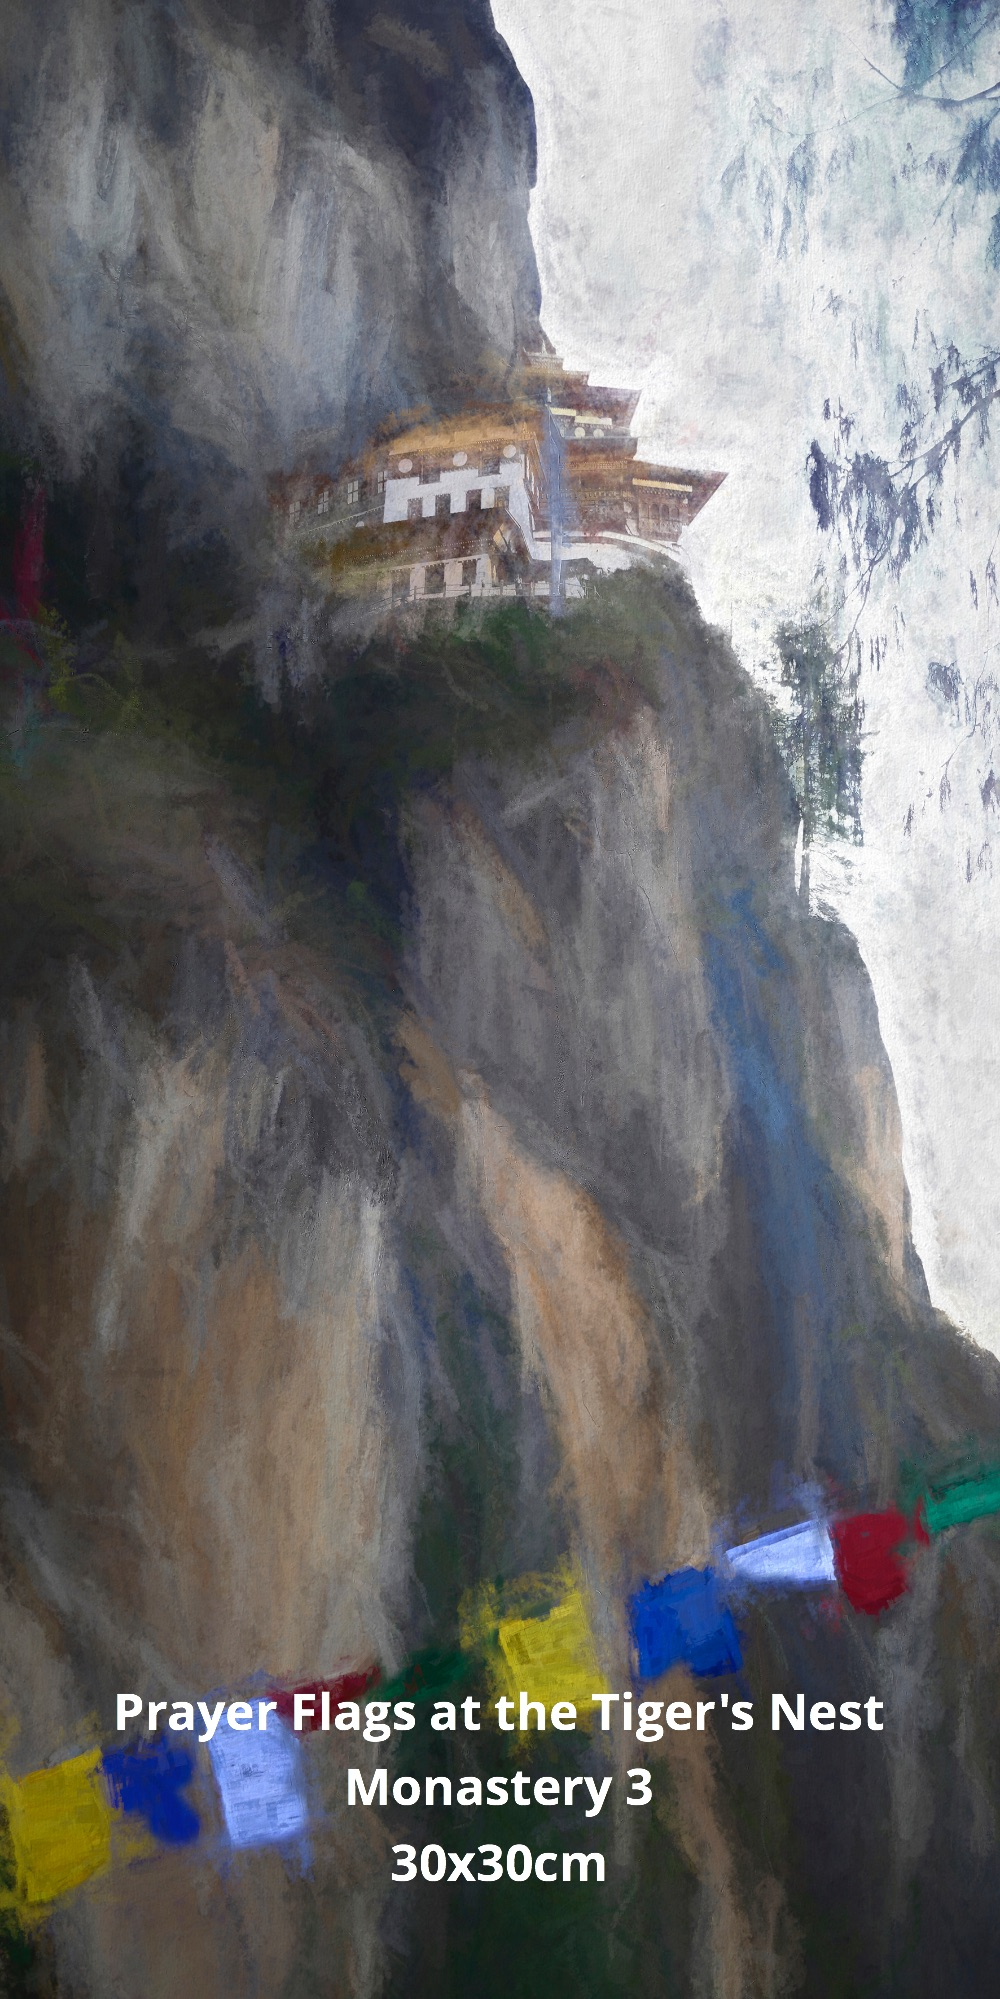 Prayer Flags at the Tiger's Nest Monastery 3